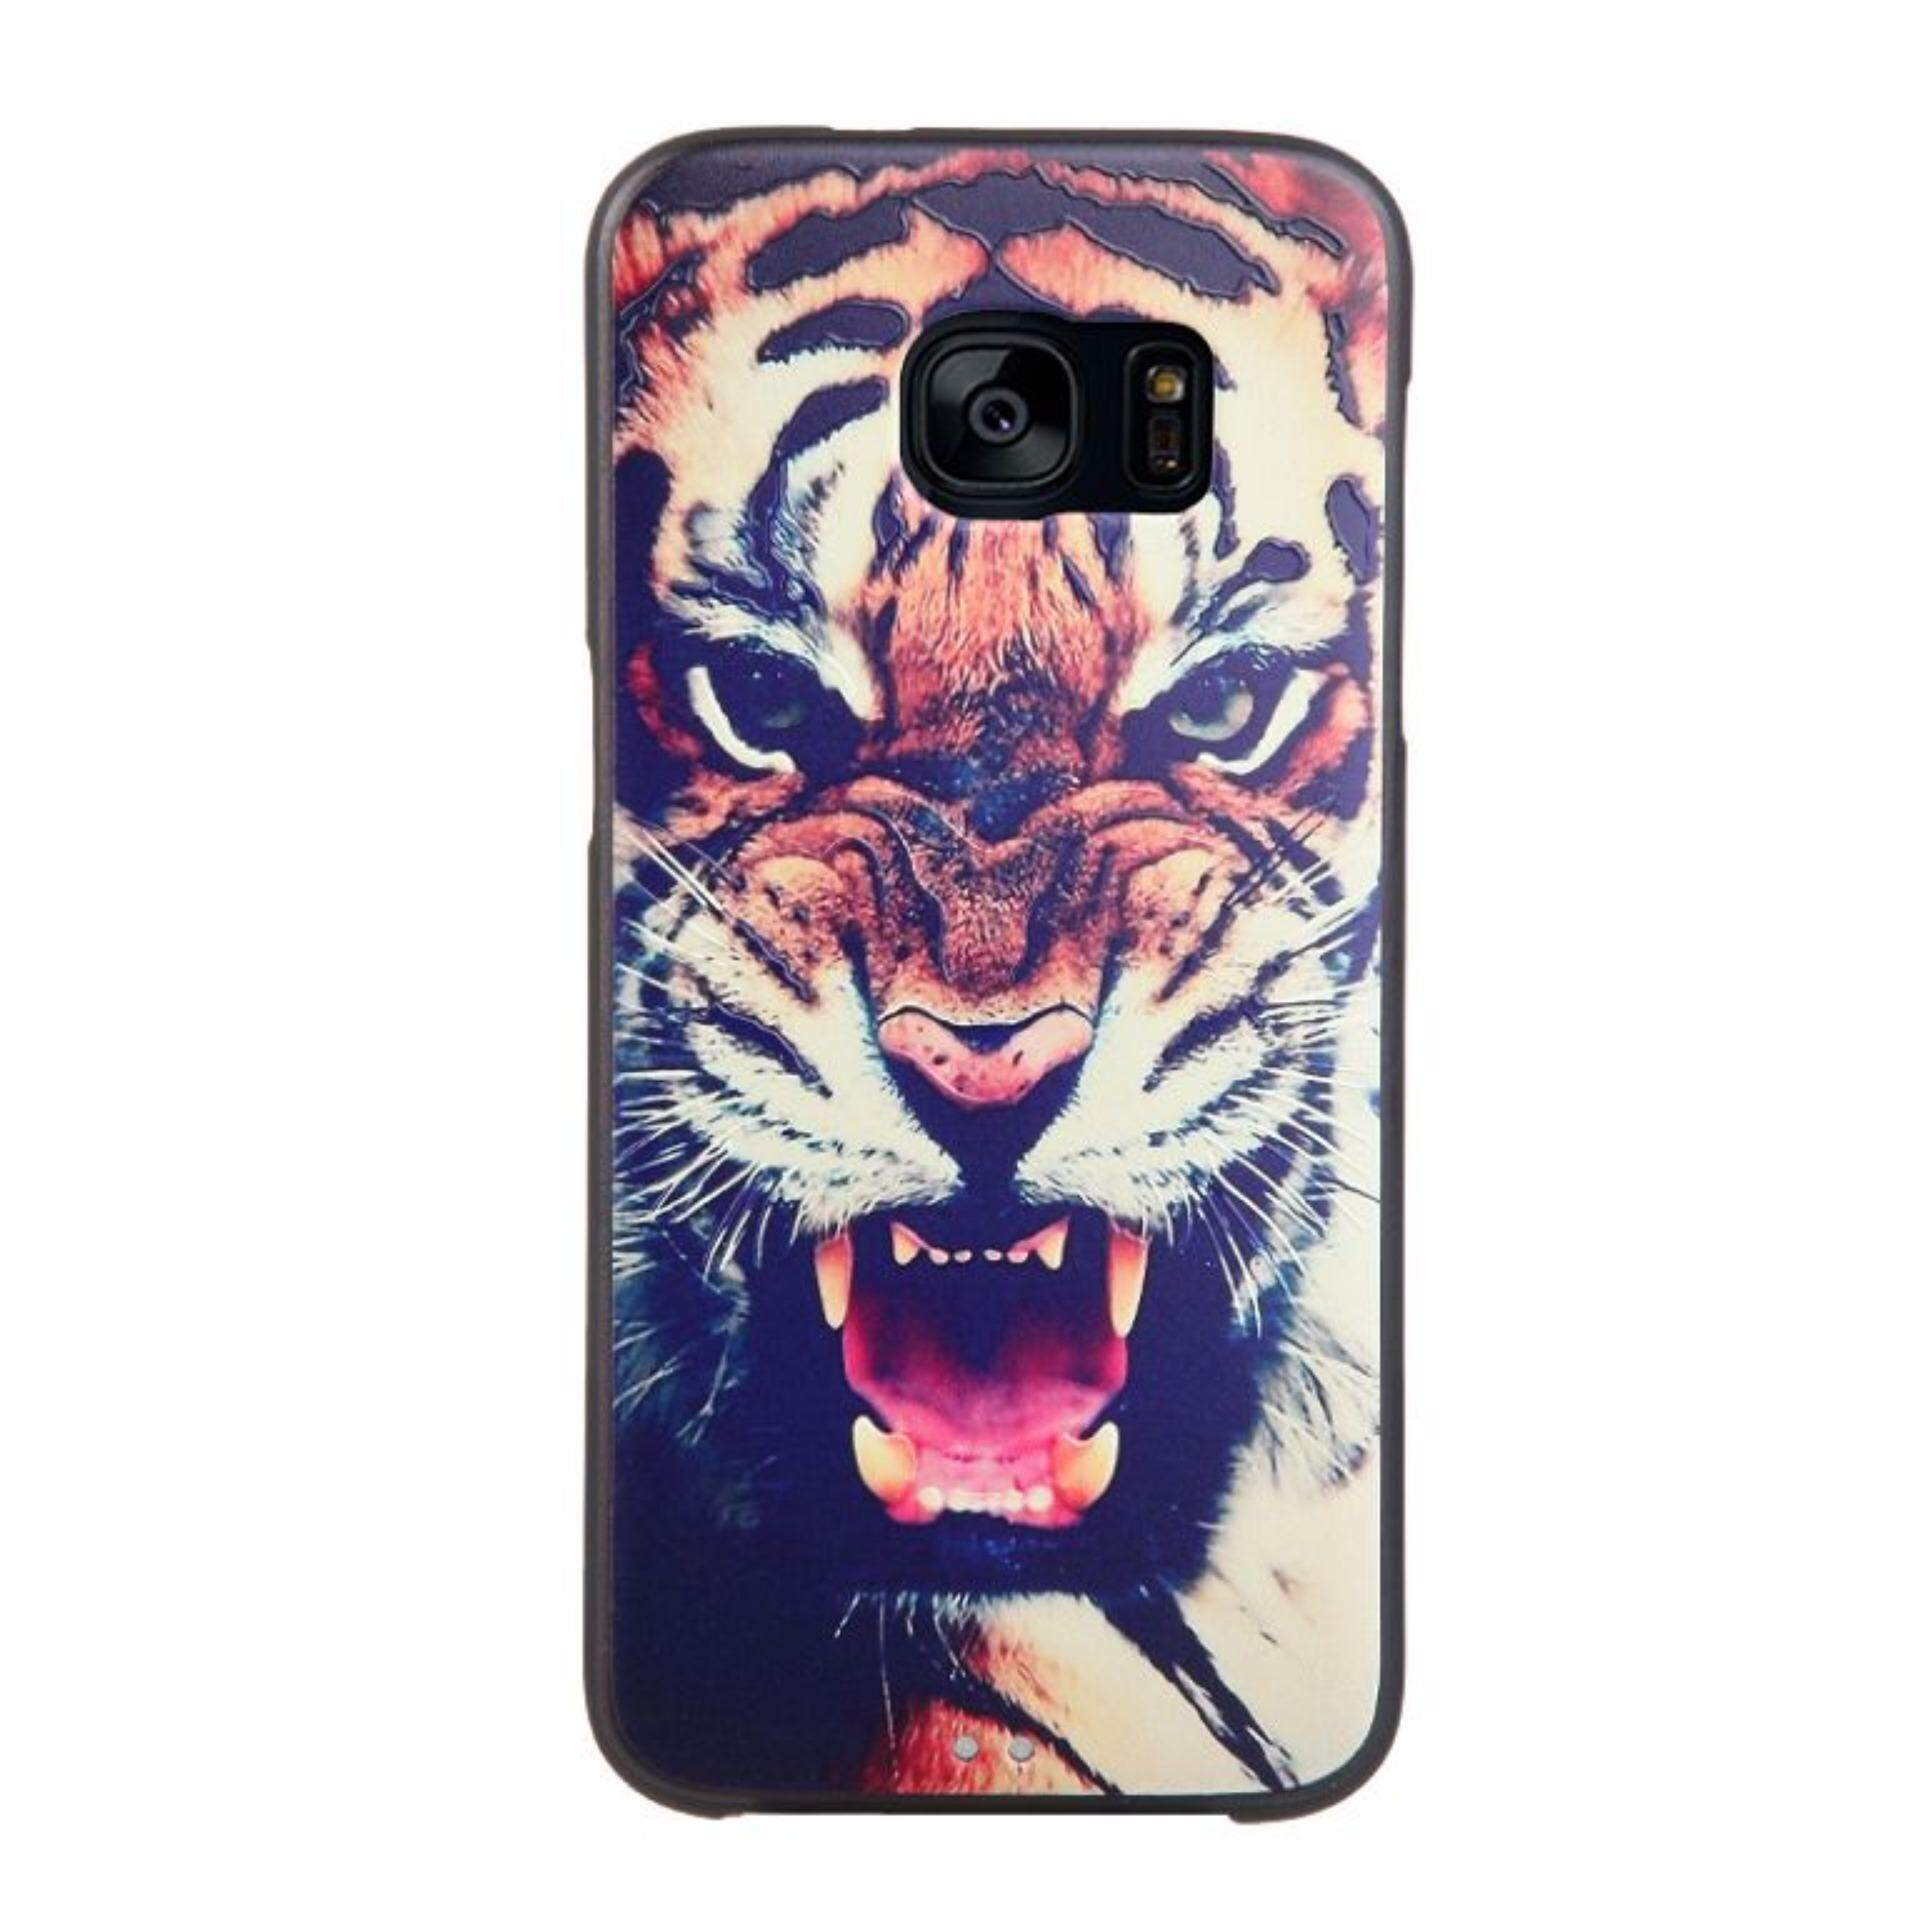 Soft TPU 3D Embossed Painting Cover Case For Samsung Galaxy S7 Edge(Tiger) -